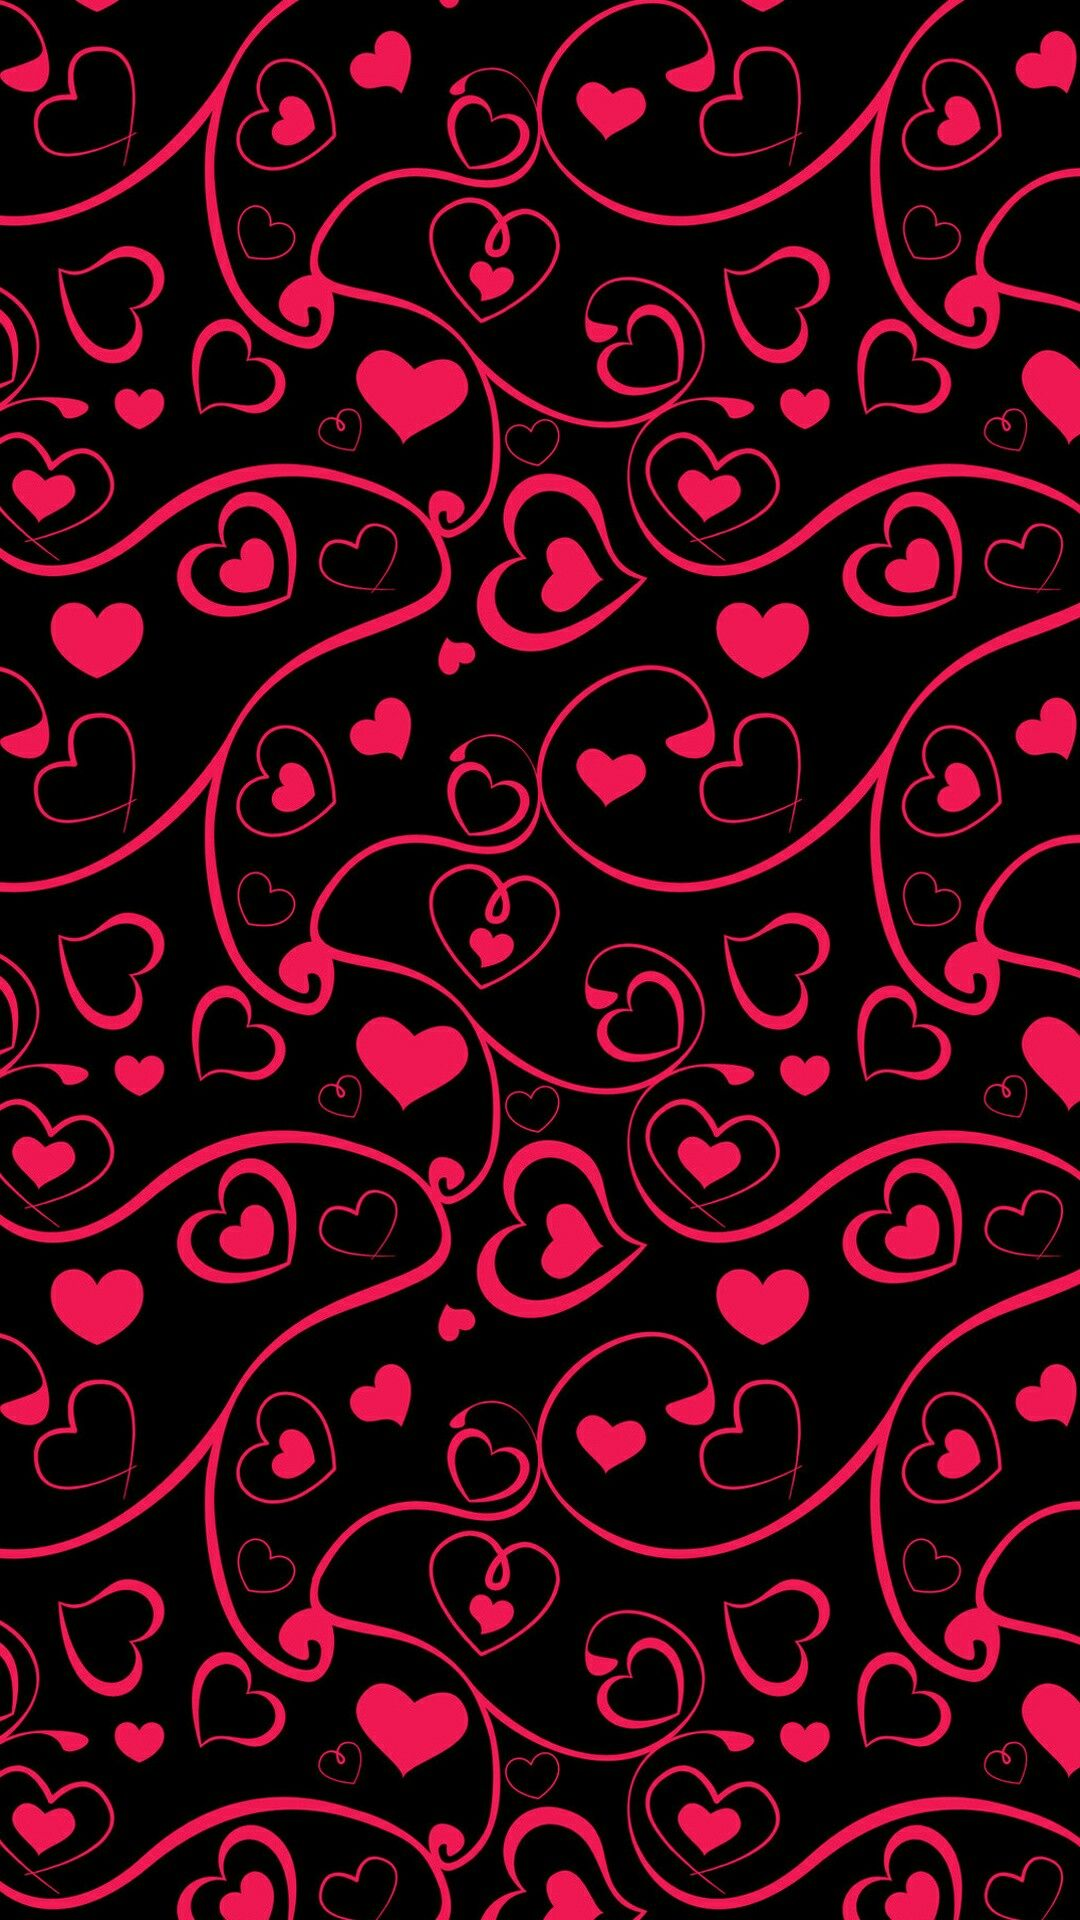 Red Black Hearts Wallpaper Heart Wallpaper Backgrounds Phone Wallpapers Valentines Wallpaper